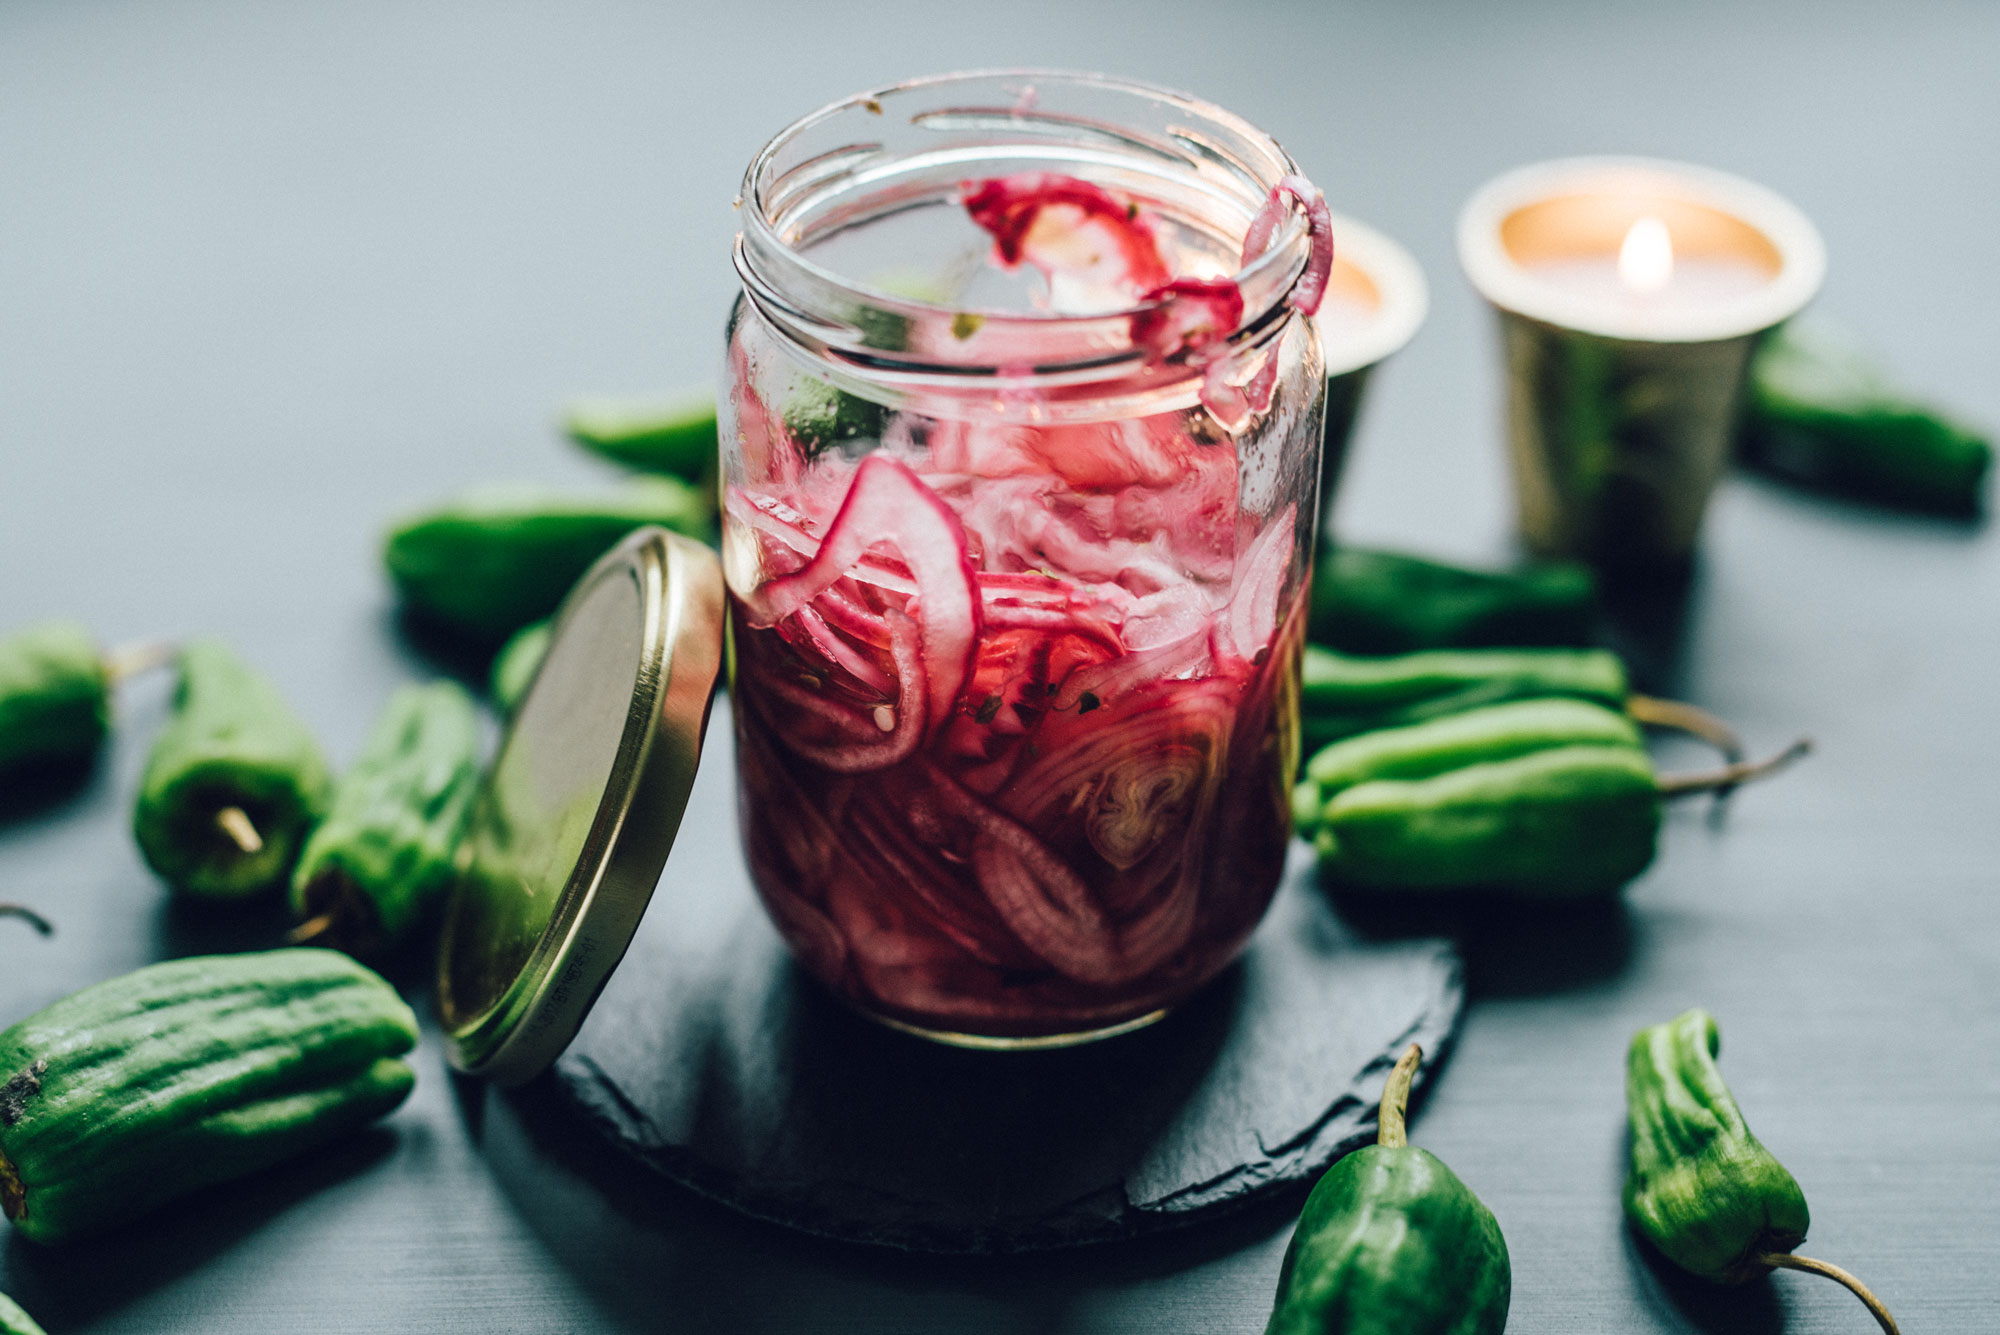 A small, open glass jar filled with sliced, pickled red onion.